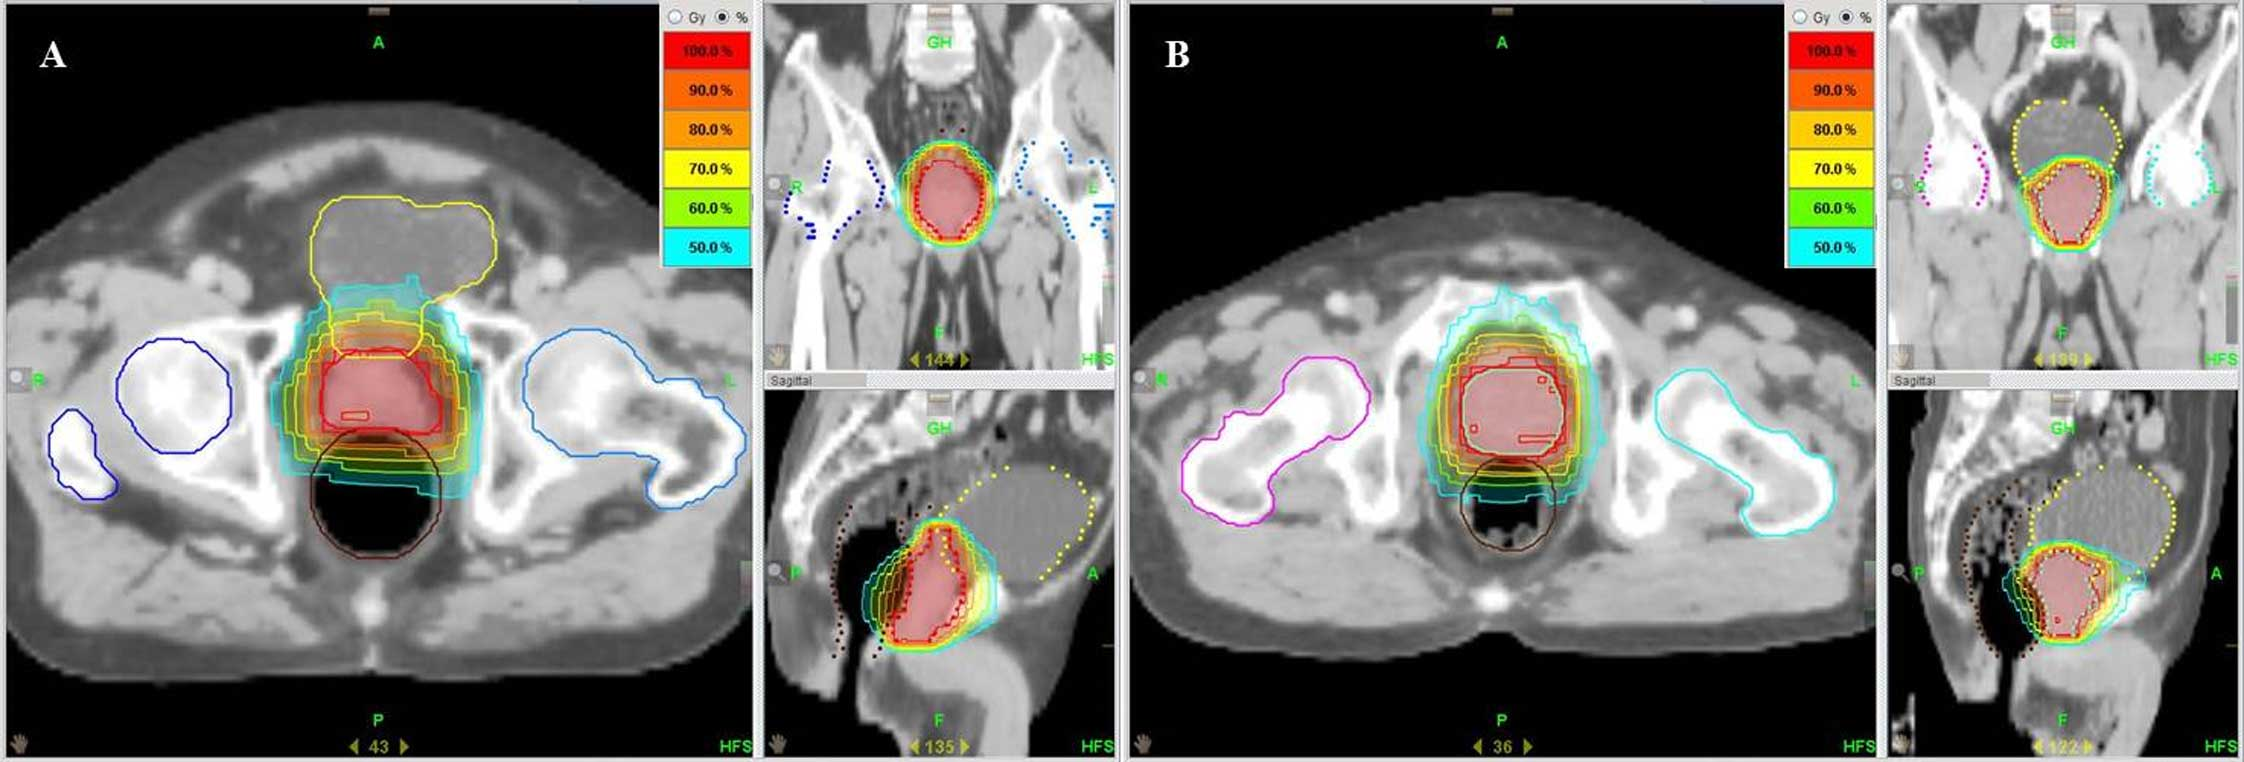 Salvage Helical Tomotherapy For Prostate Cancer Recurrence